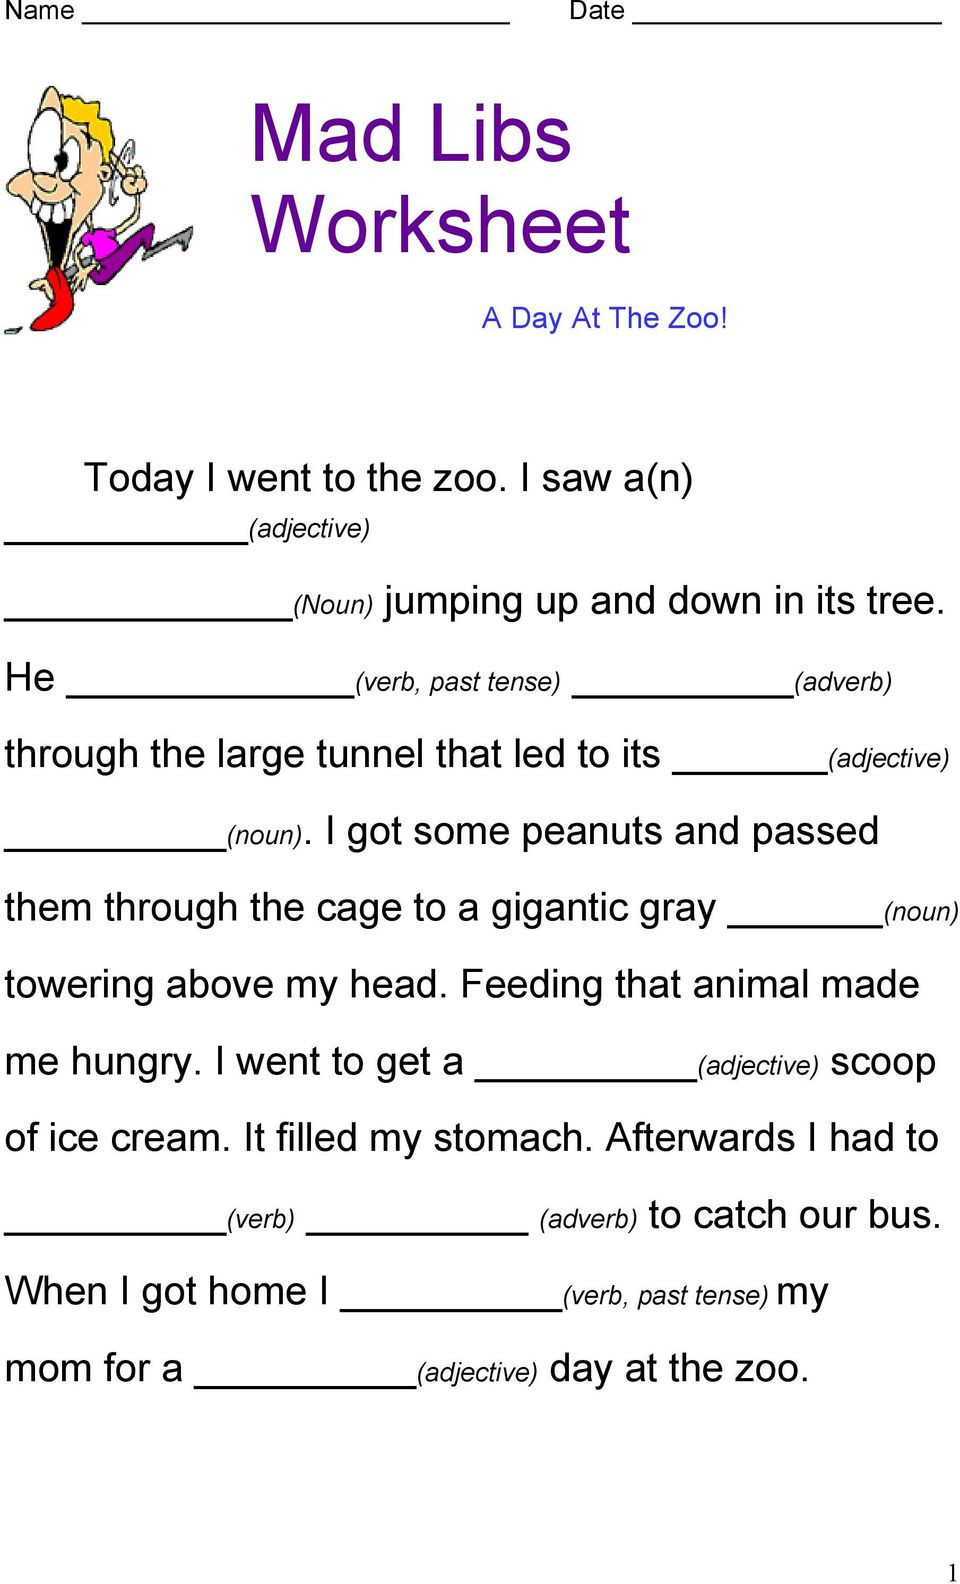 Noun Verb Adjective Worksheet Mad Libs Worksheet today Went to the Zoo Saw He Verb